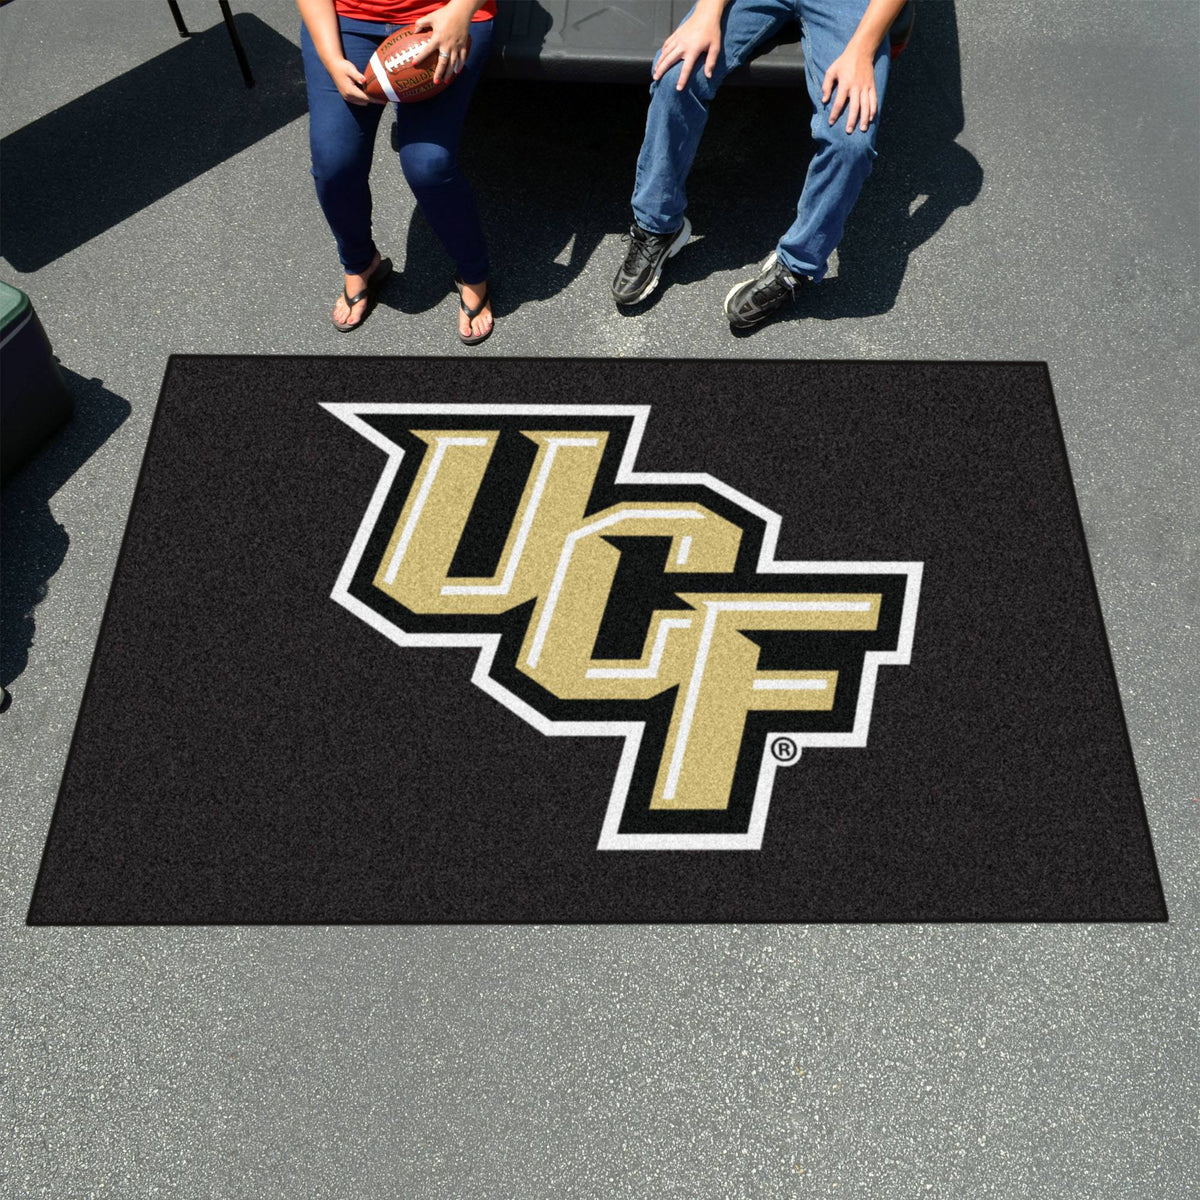 Collegiate - Ulti-Mat: A - L Collegiate Mats, Rectangular Mats, Ulti-Mat, Collegiate, Home Fan Mats Central Florida